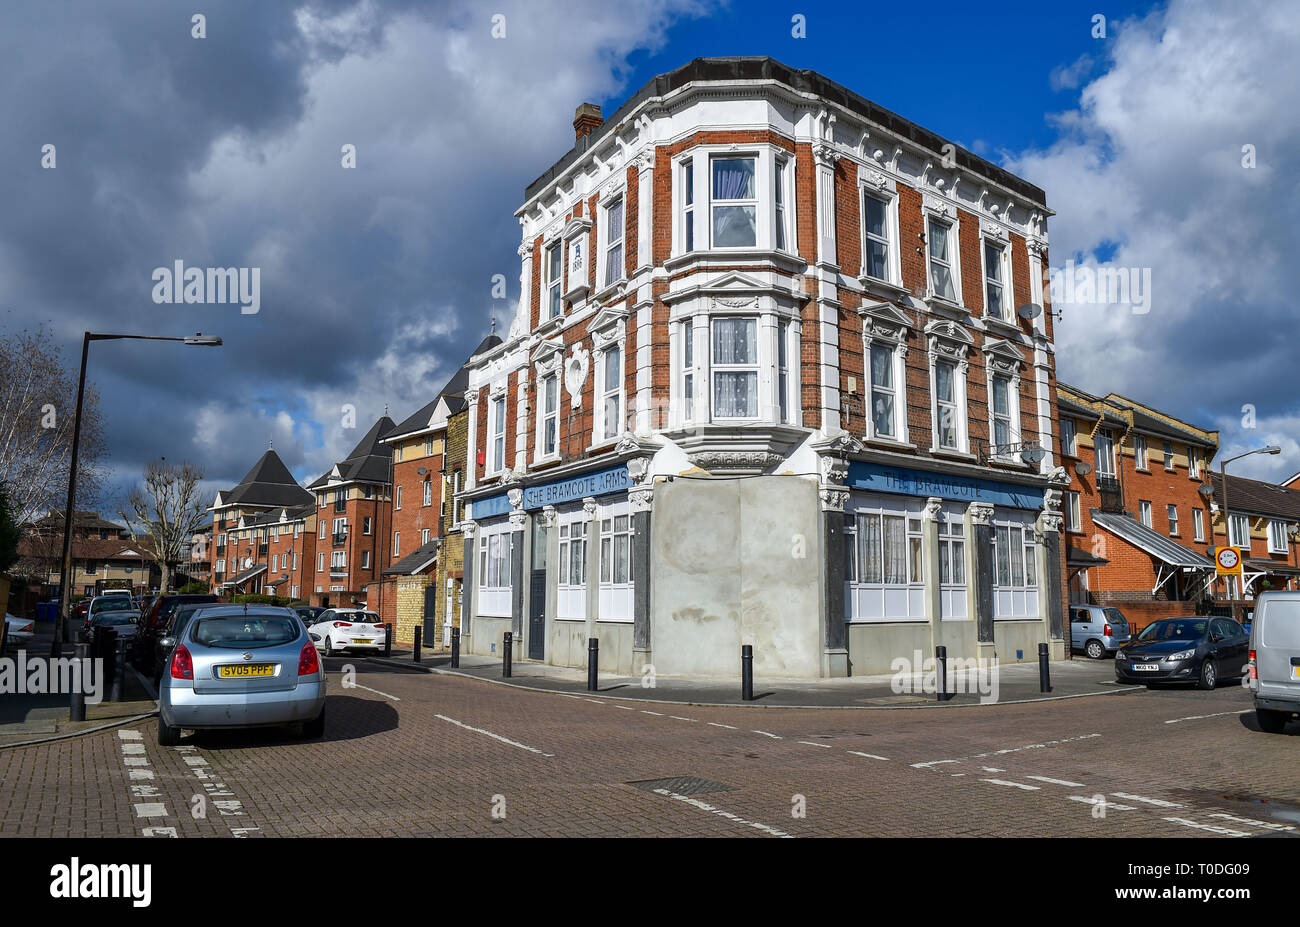 Bermondsey Borough of Southwark London UK - The Bramcote Arms which has been converted into flats Stock Photo